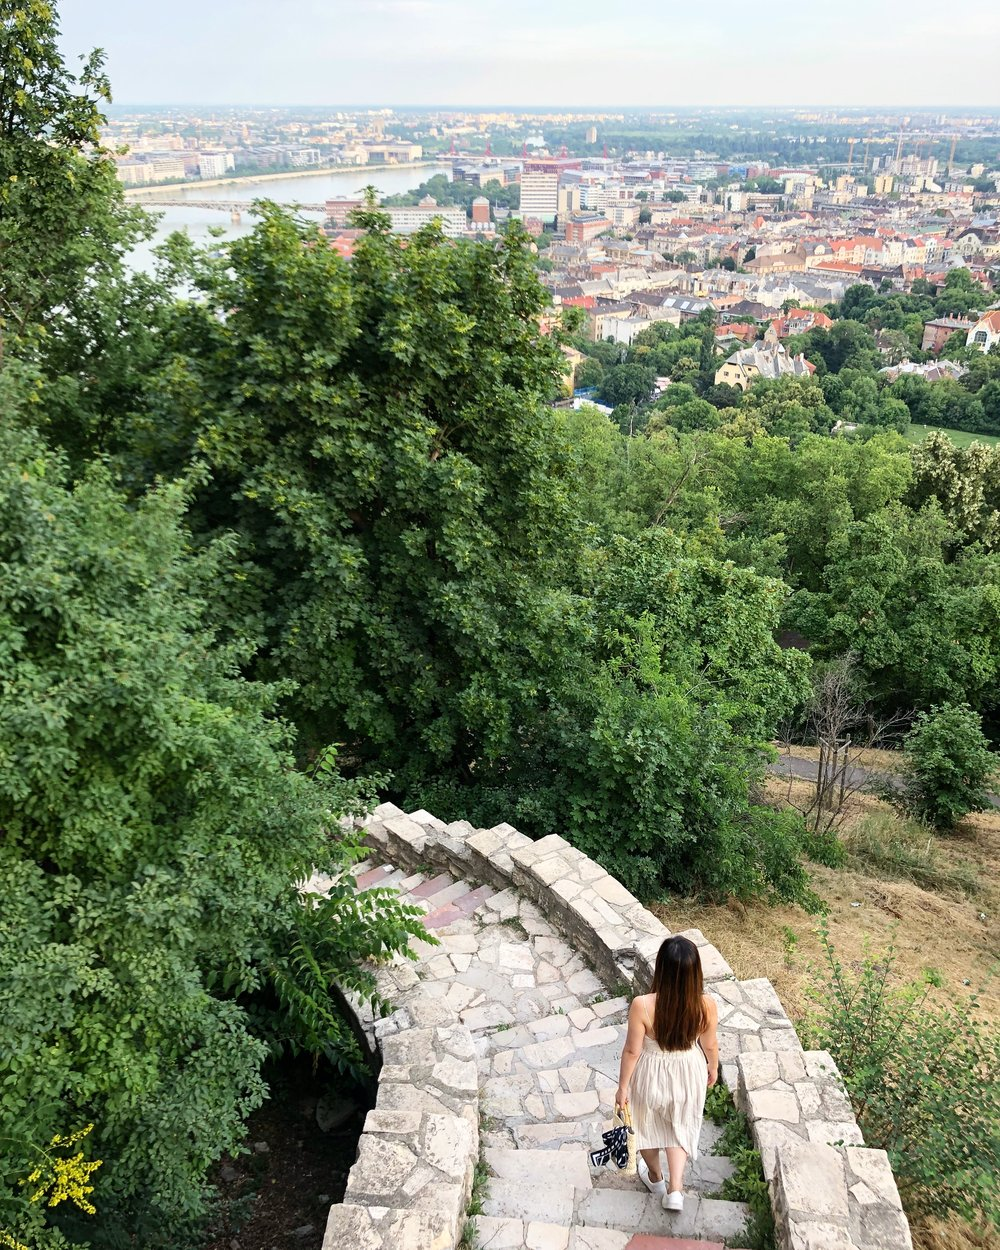 There is a bit of a hike up to the Citadella, but it's totally worth it!